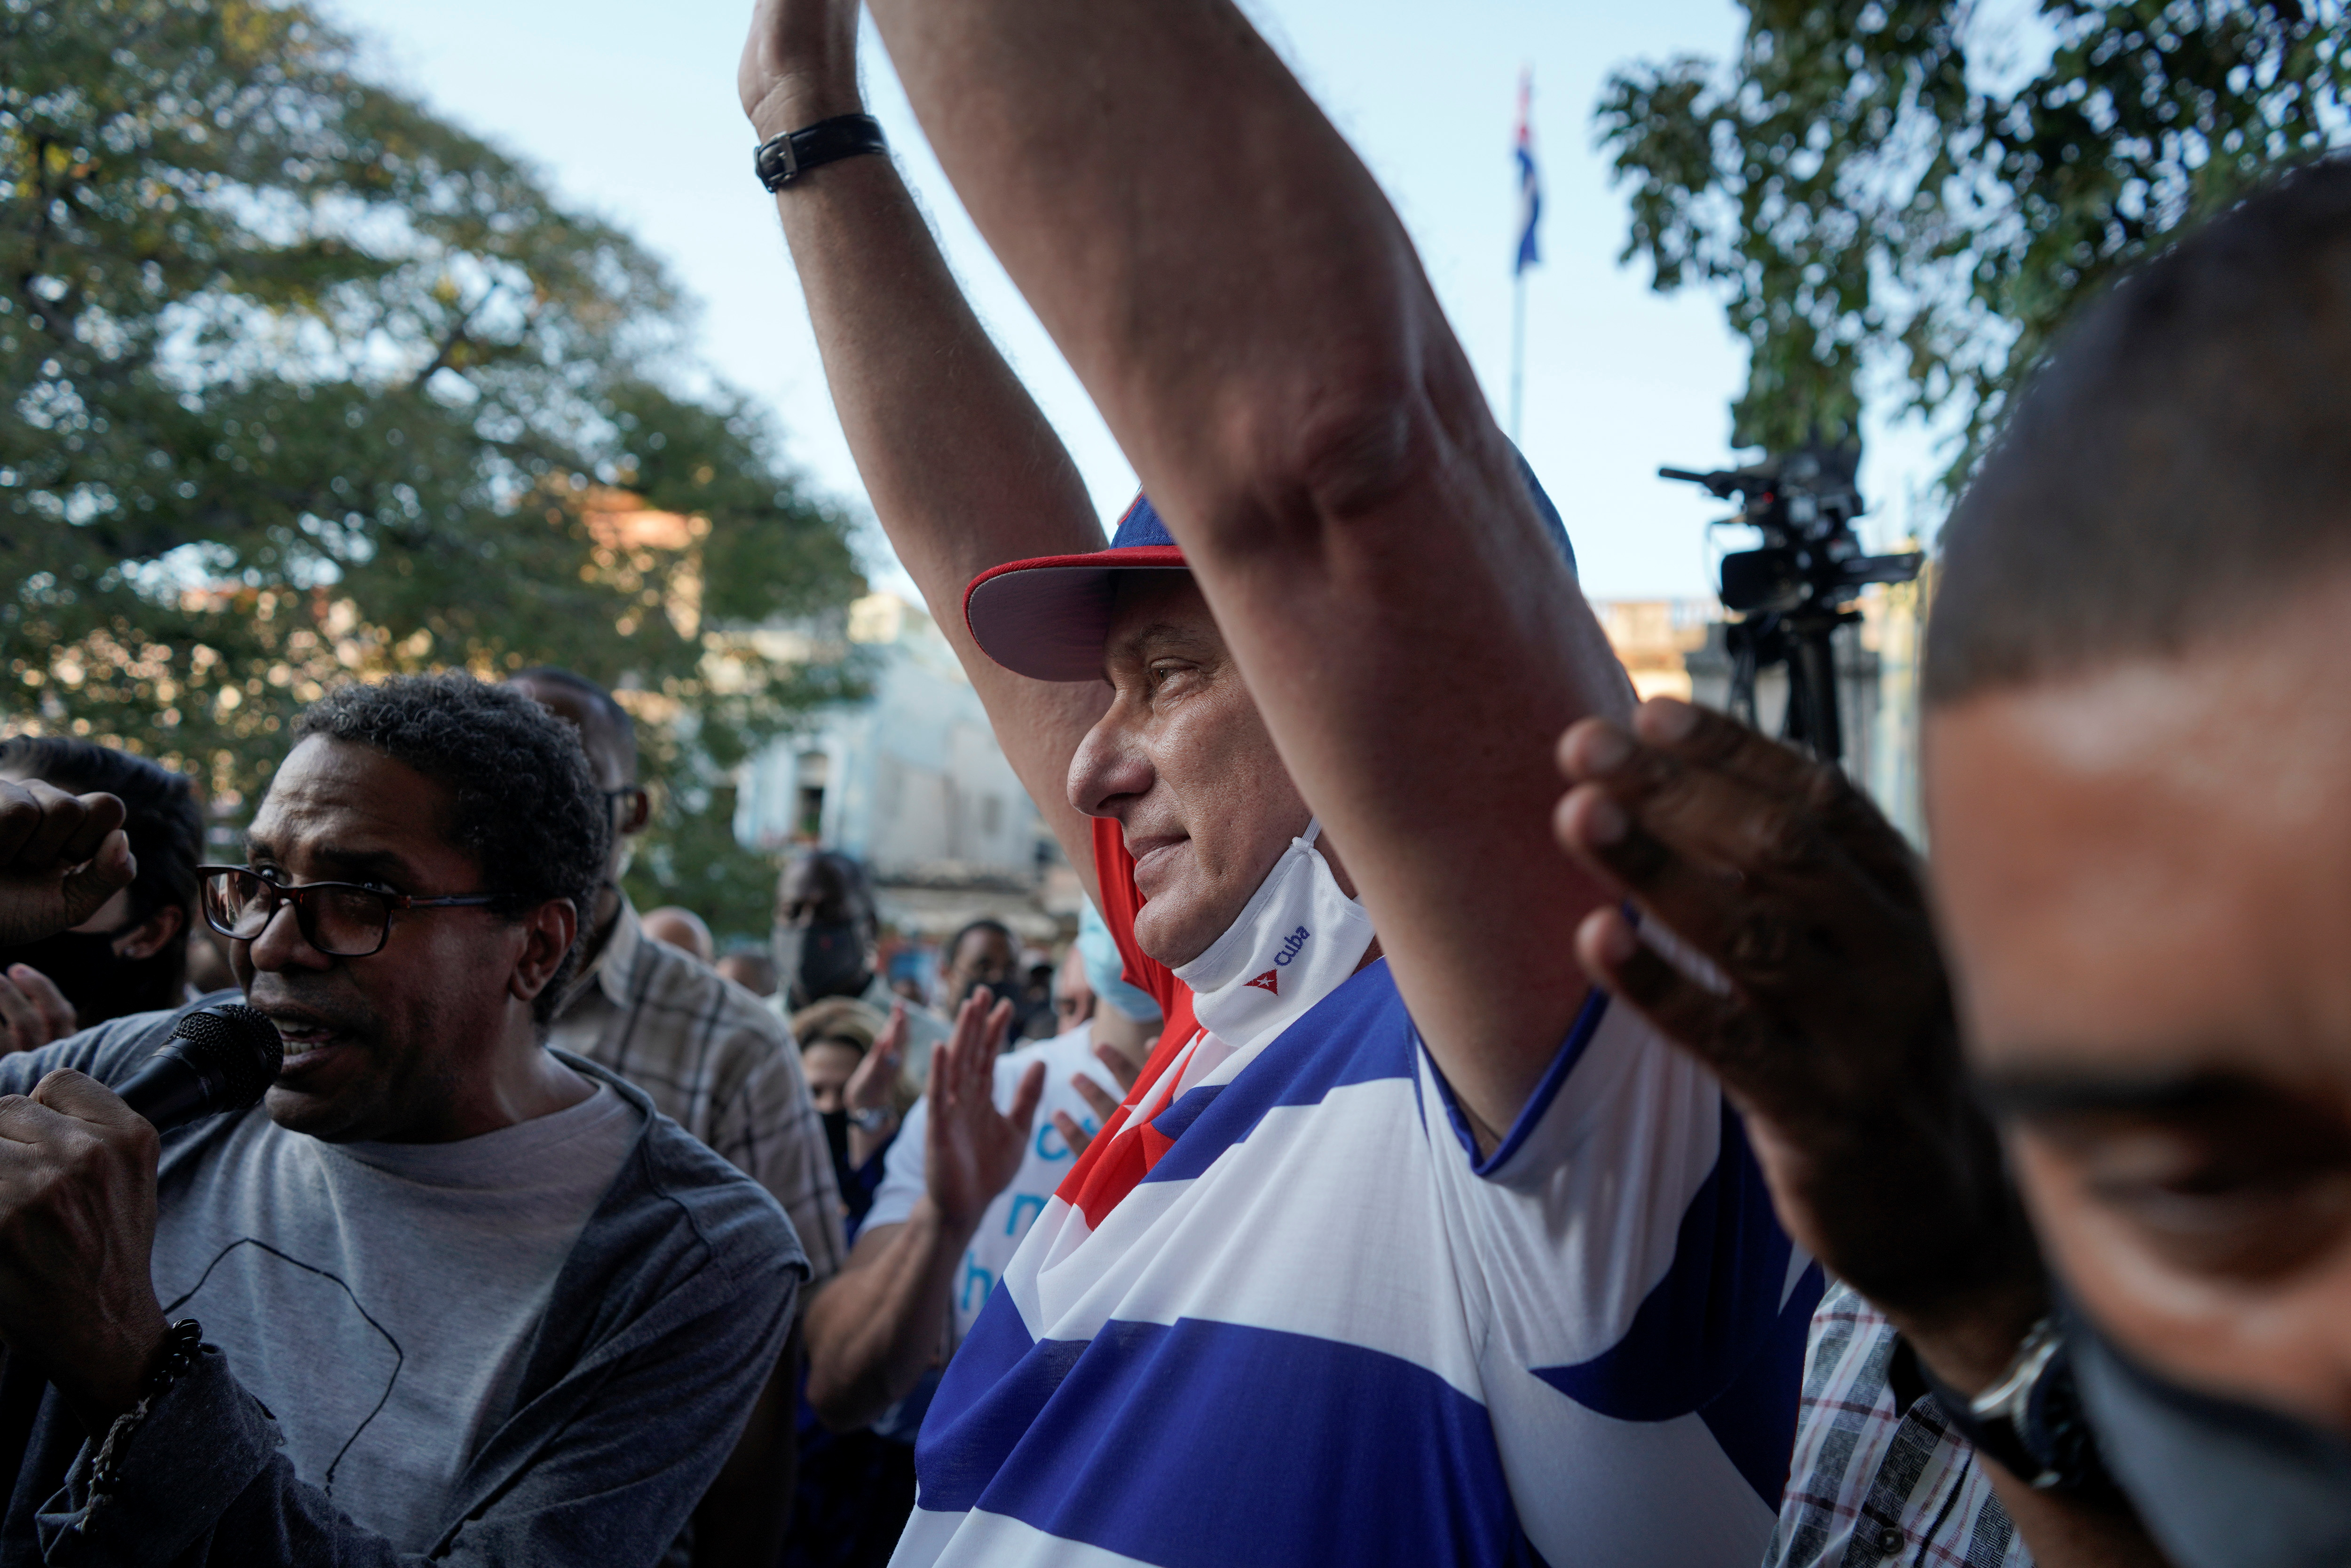 Cuba's President Miguel Diaz Canel takes part into a pro-government rally in Havana, Cuba, November 29, 2020. REUTERS/Alexandre Meneghini